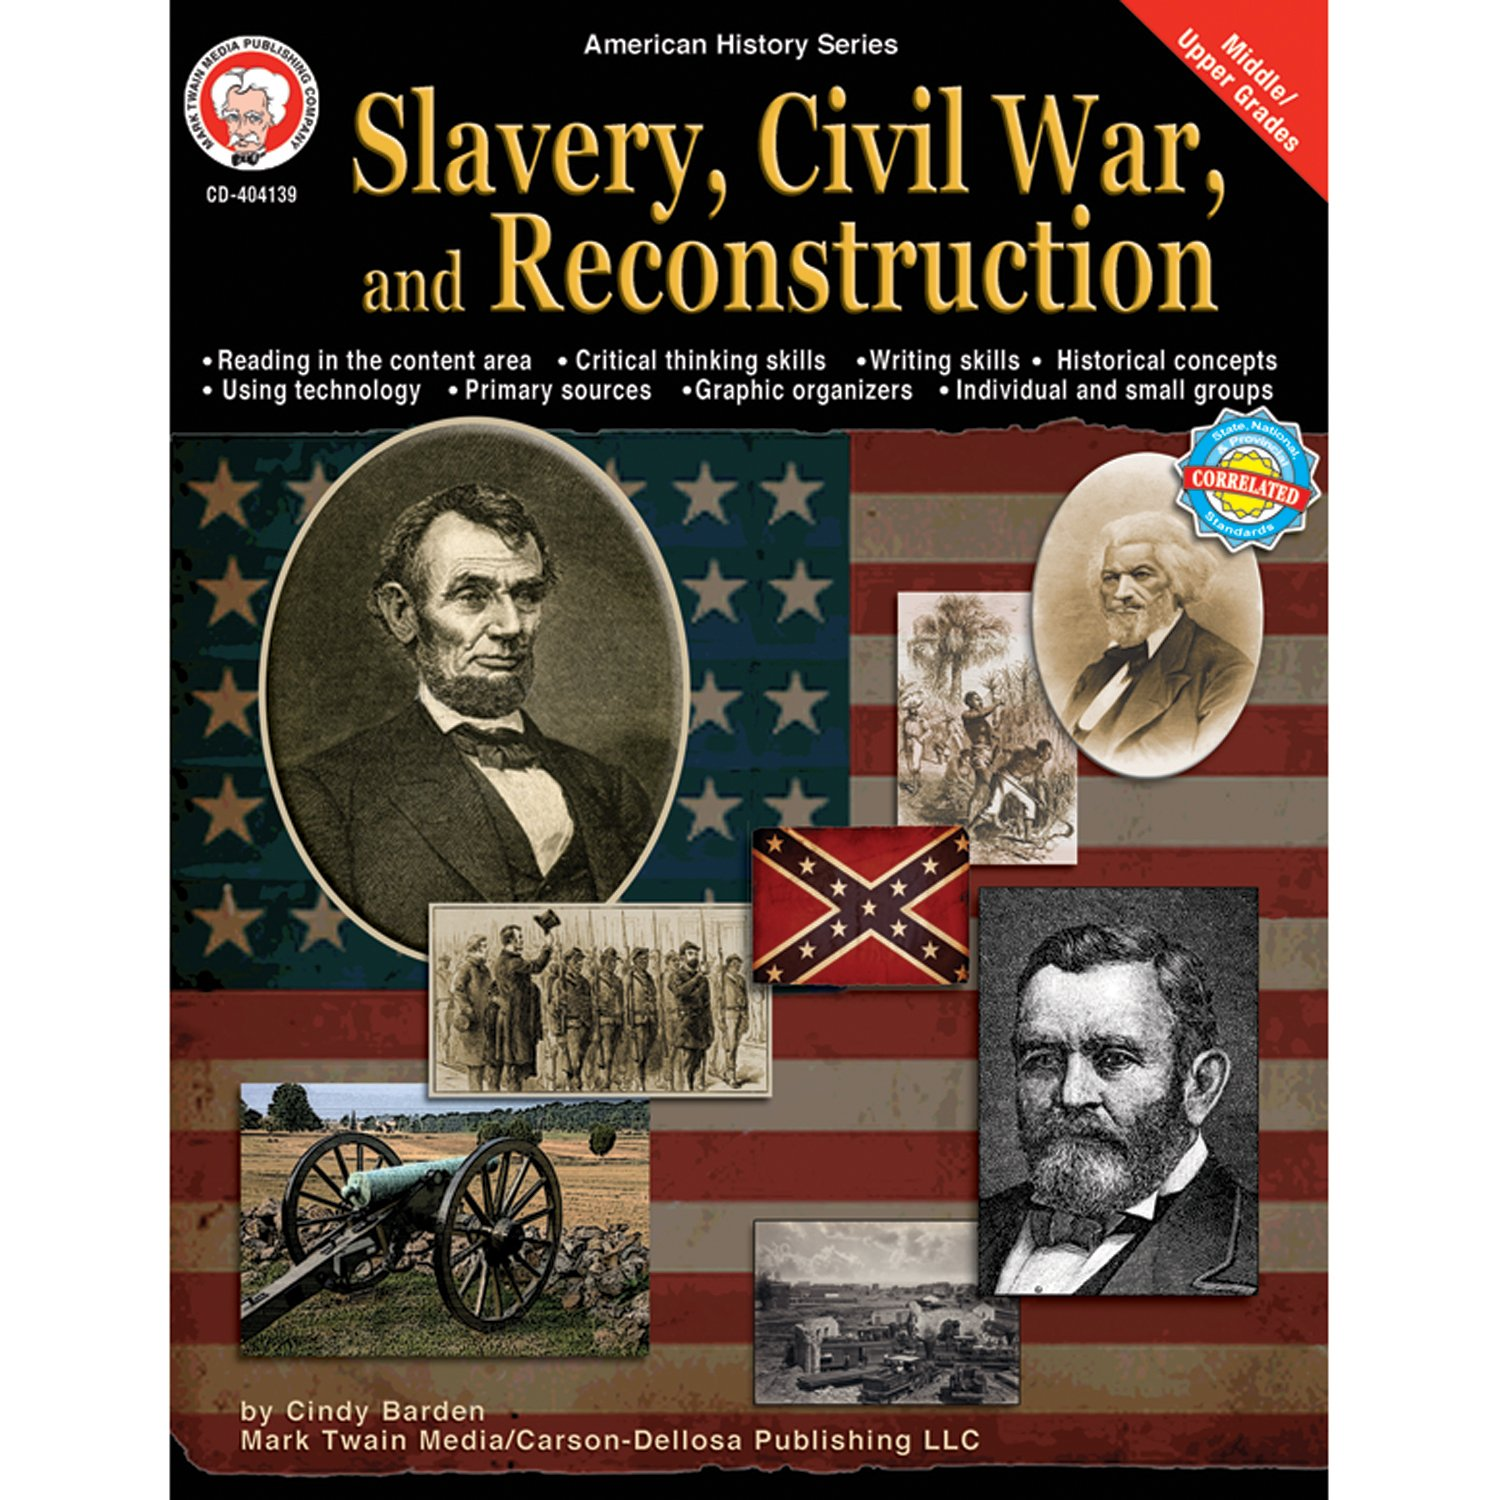 Slavery, Civil War, and Reconstruction, Grades 6 - 12 (American History Series) pdf